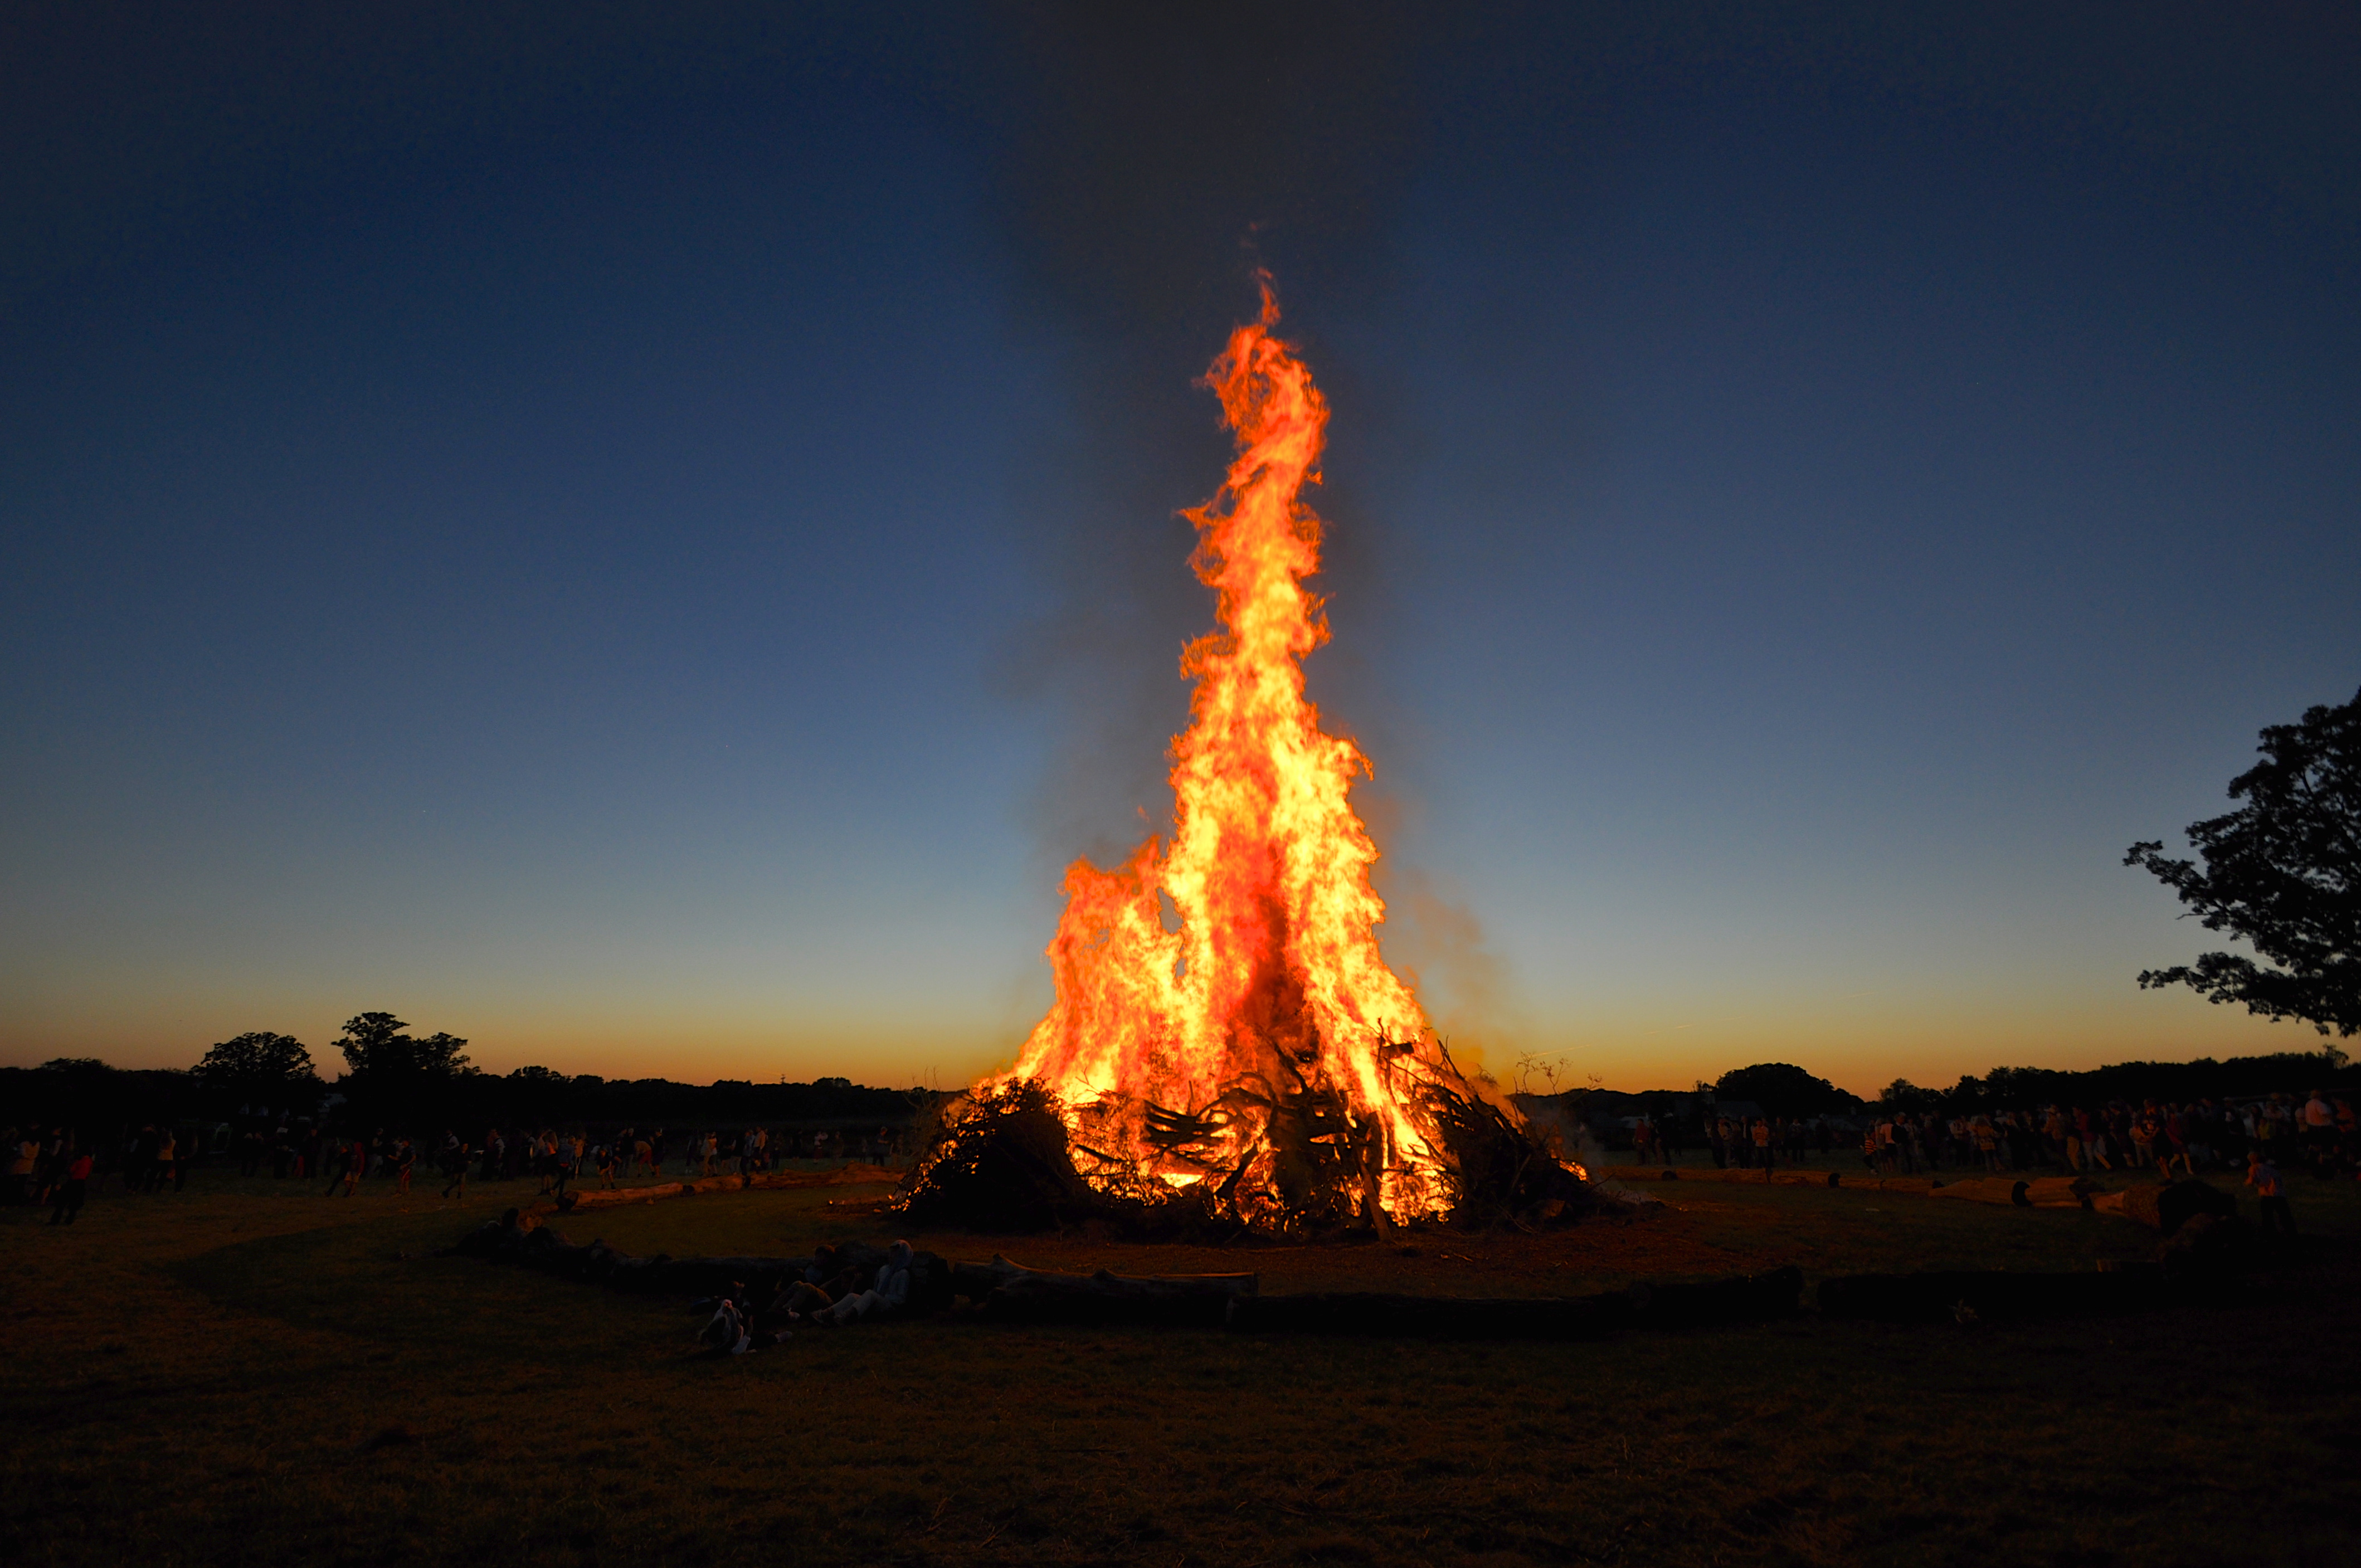 Funds raised from Bagpipes and Bonfire support Lake Forest Open Lands ...